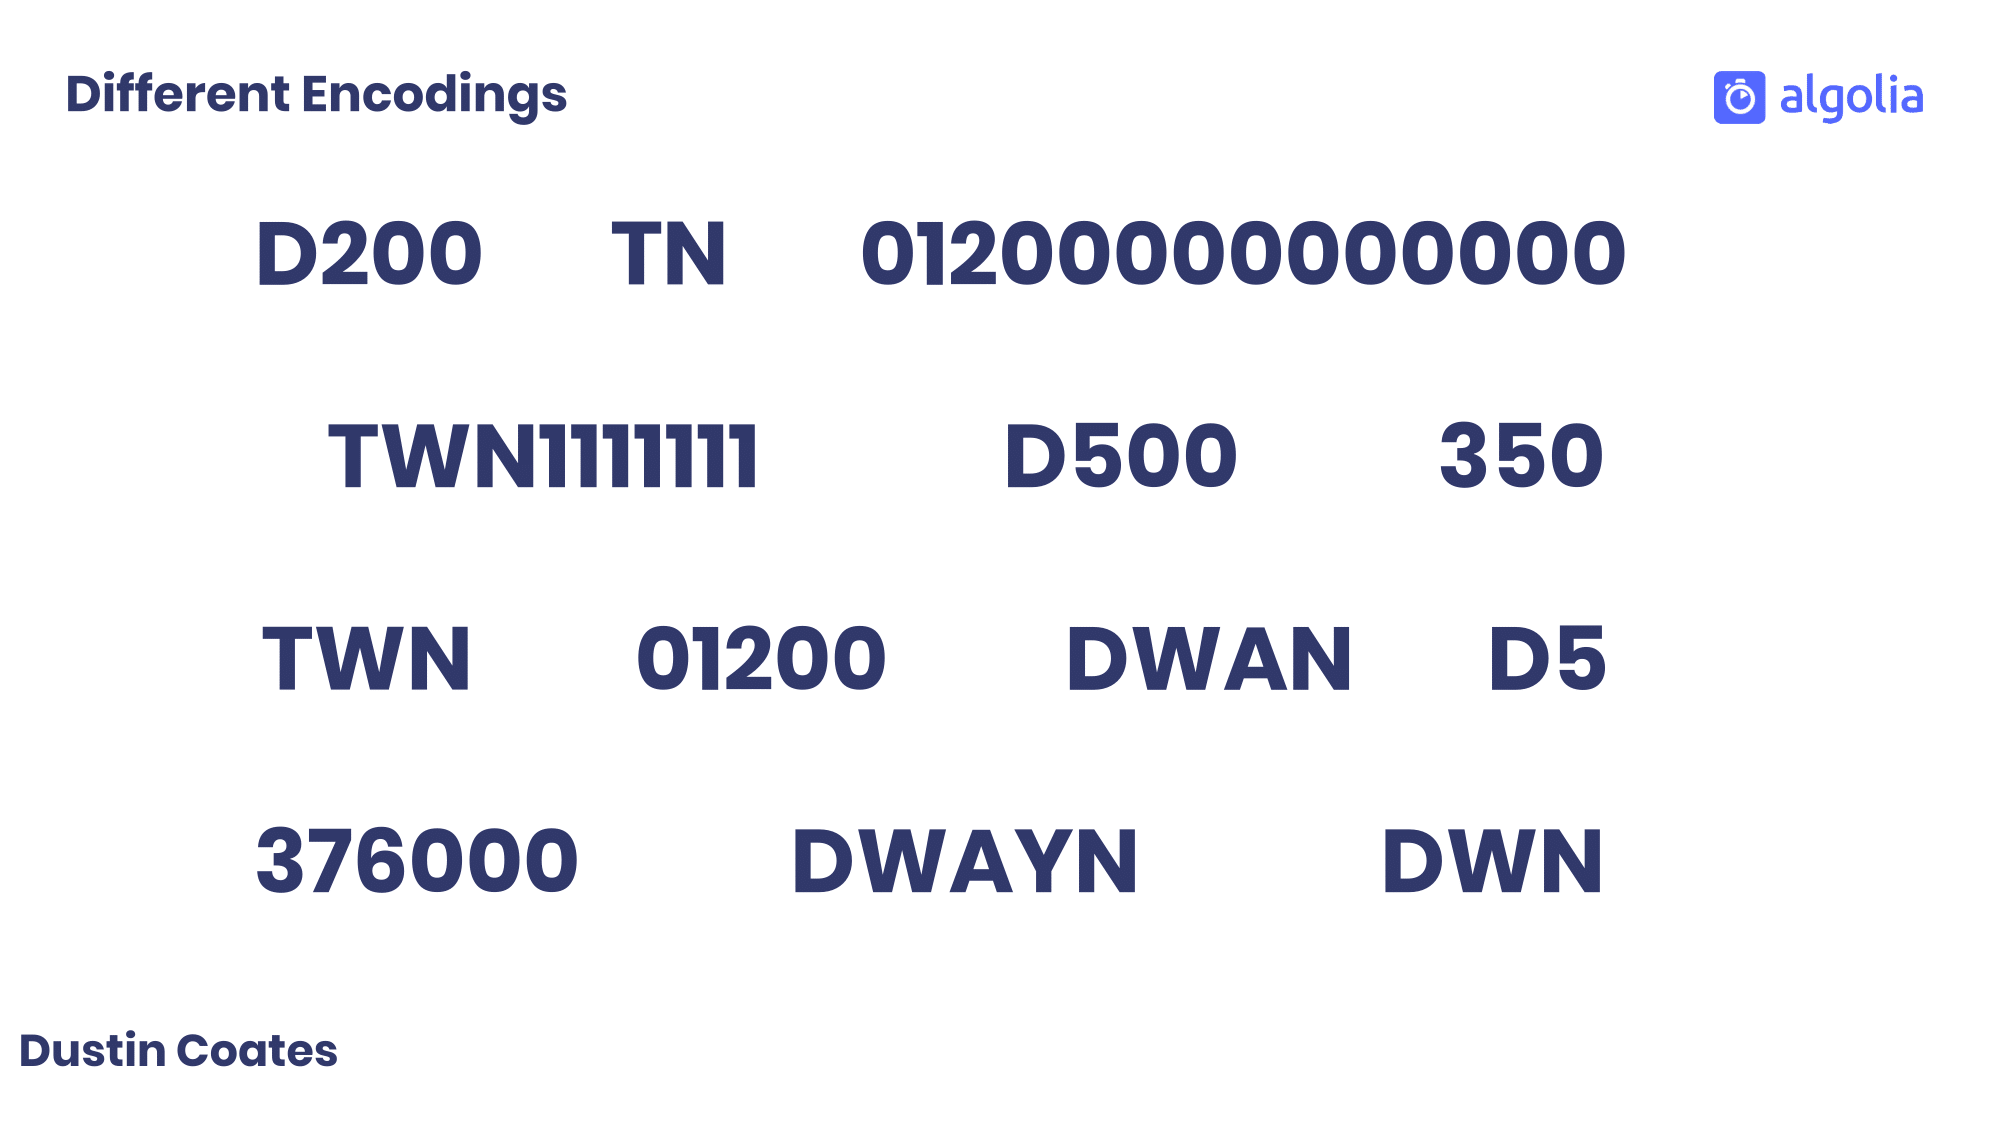 Different phonetic encodings for Dwayne